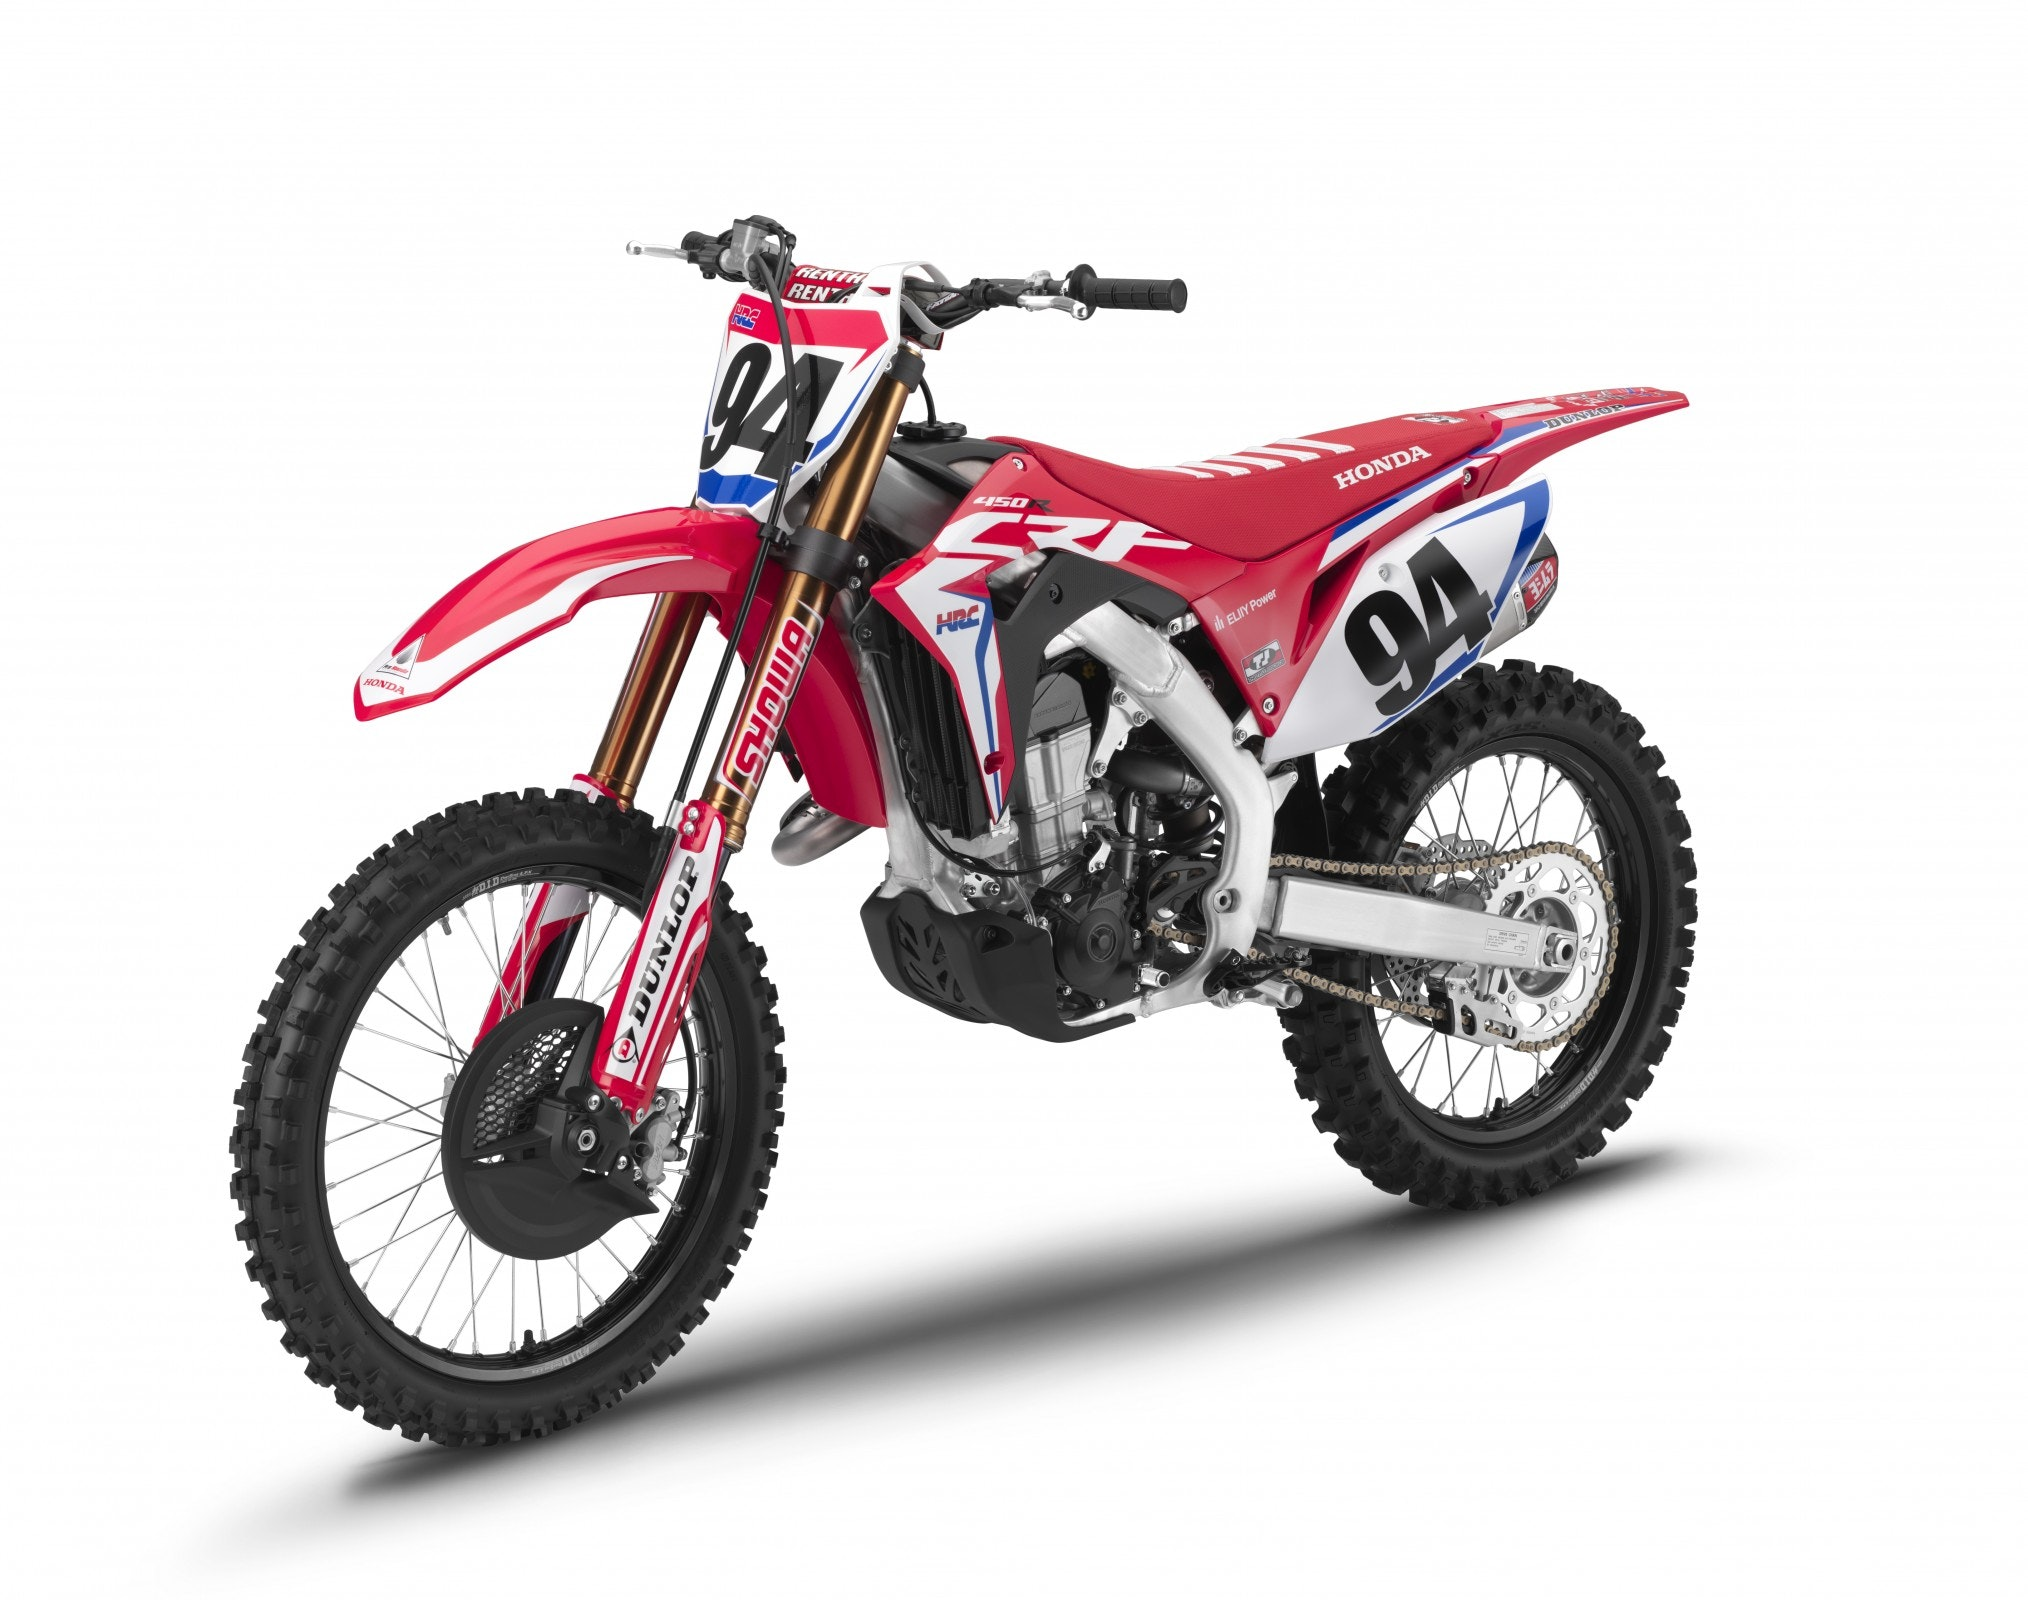 19_Honda_CRF450R_WE_FL34